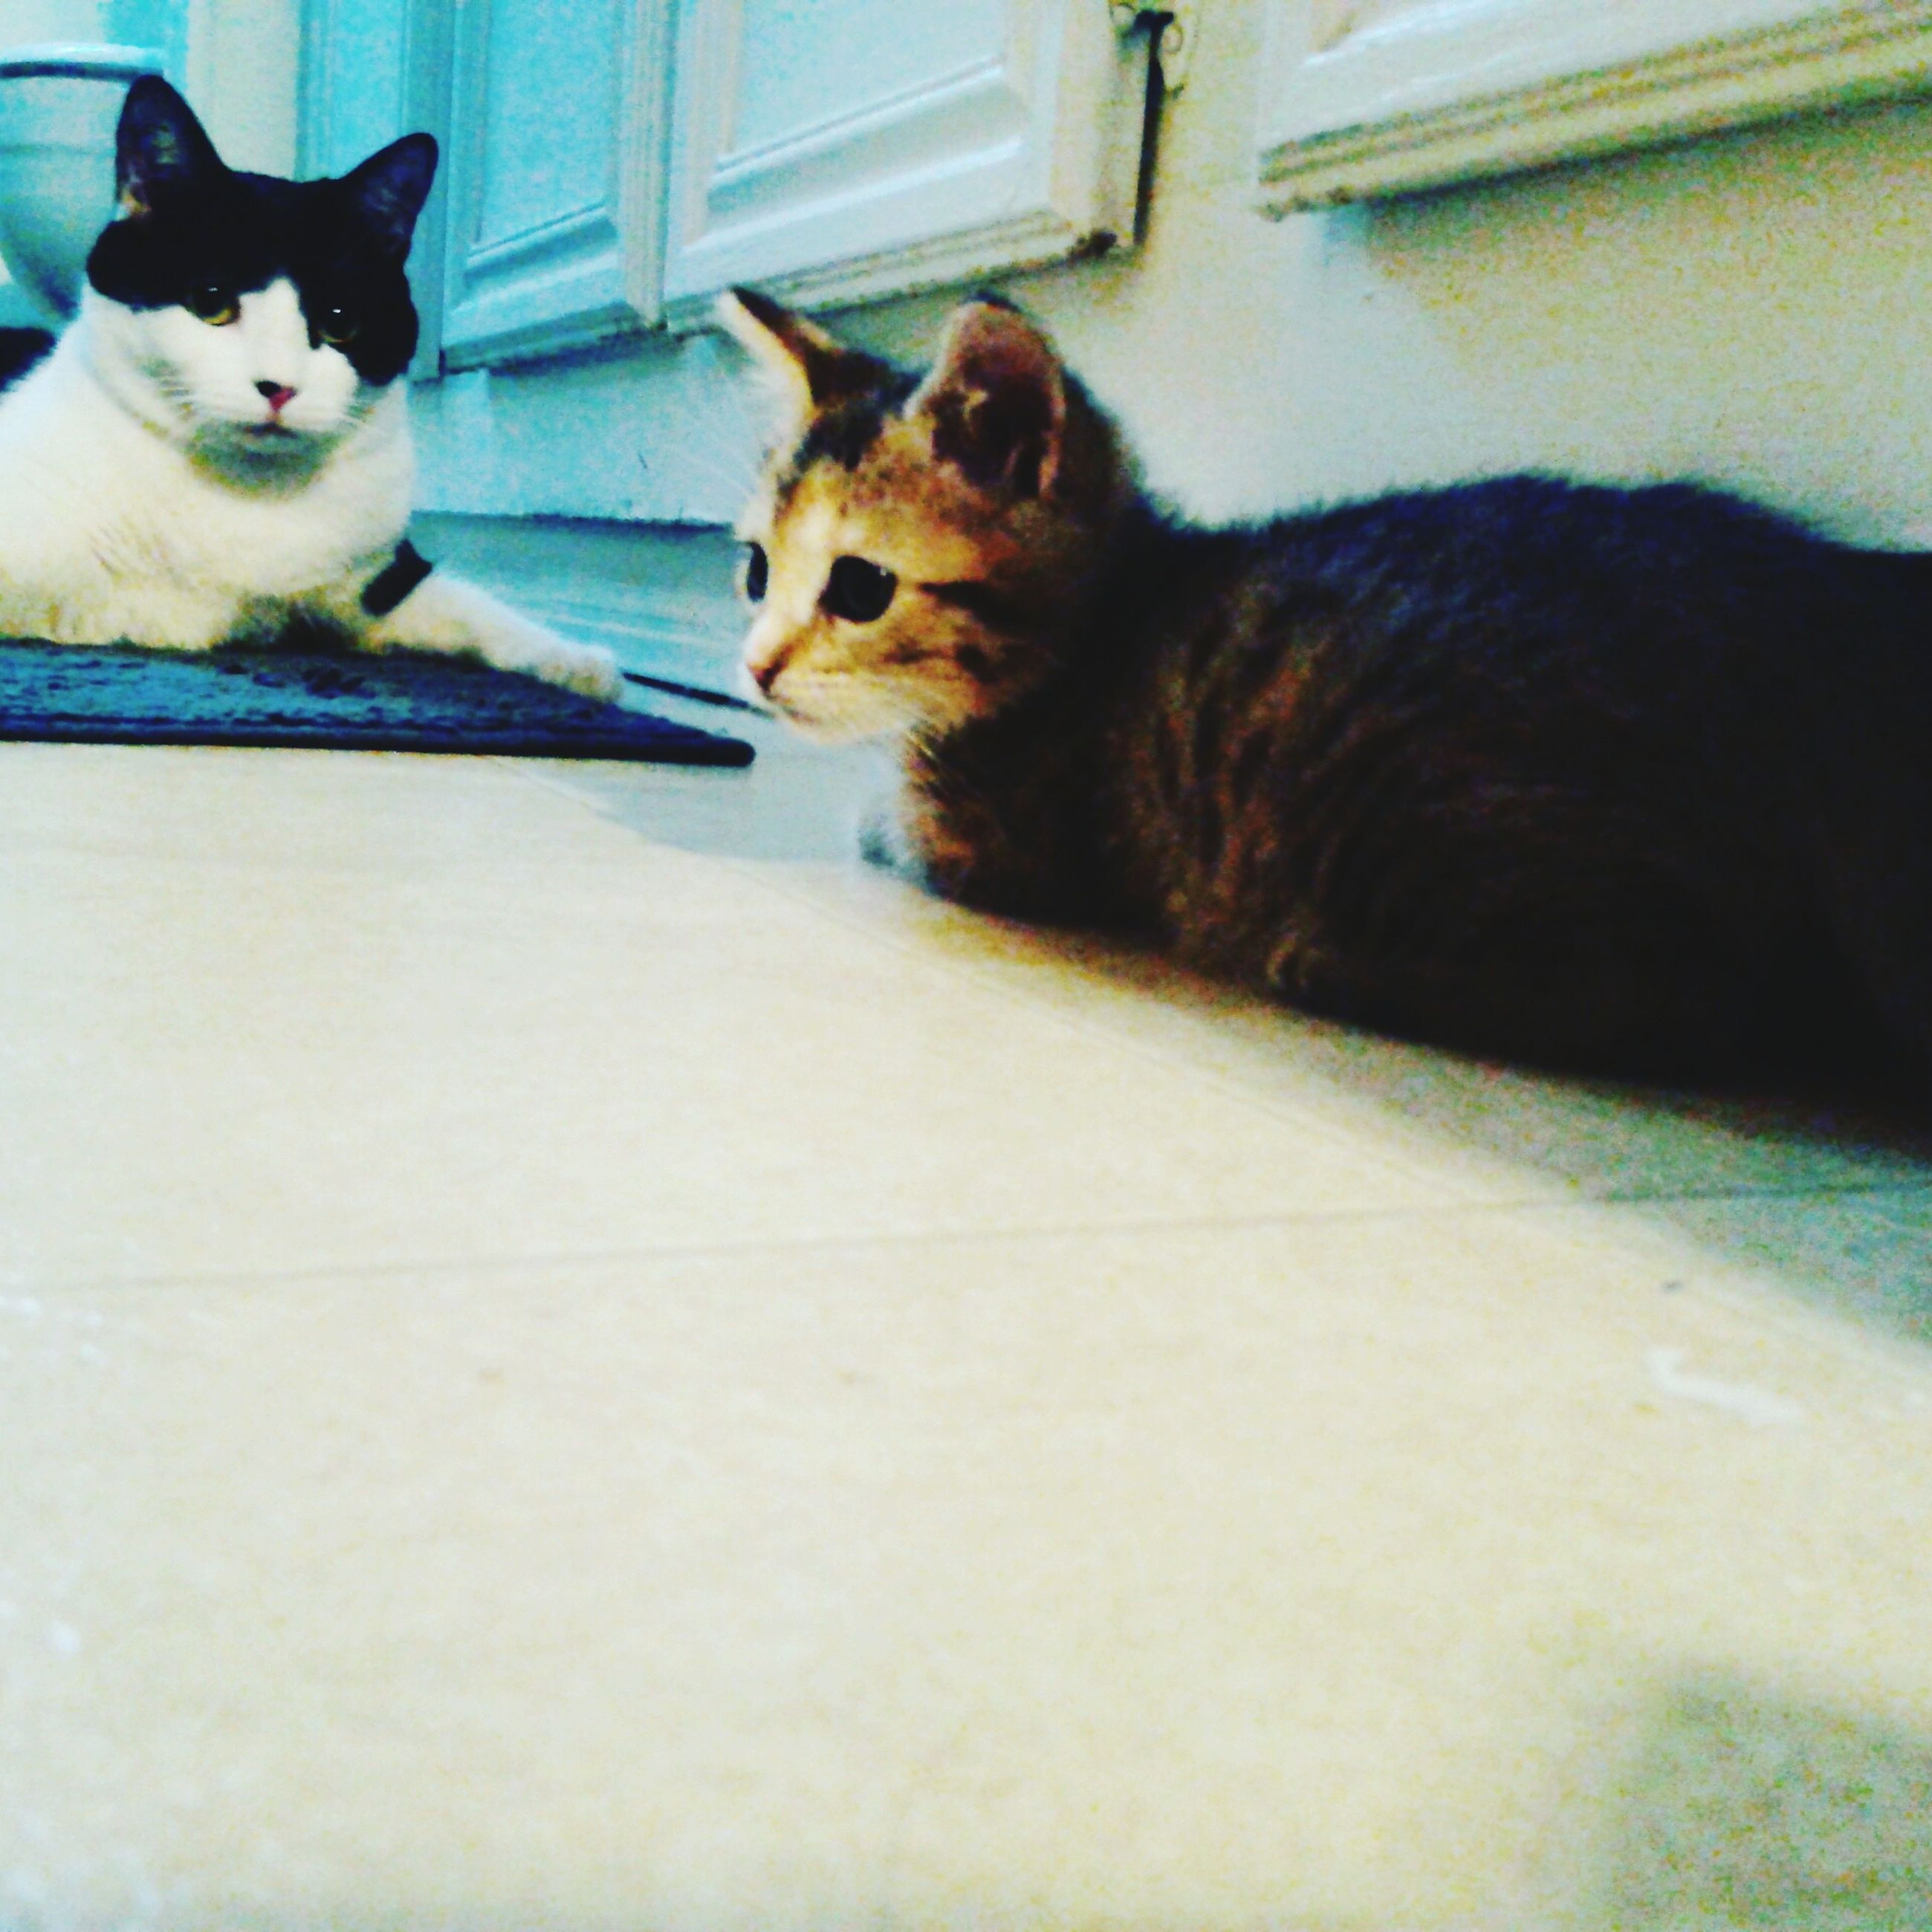 pets, animal themes, domestic animals, domestic cat, mammal, one animal, feline, cat, indoors, no people, home interior, day